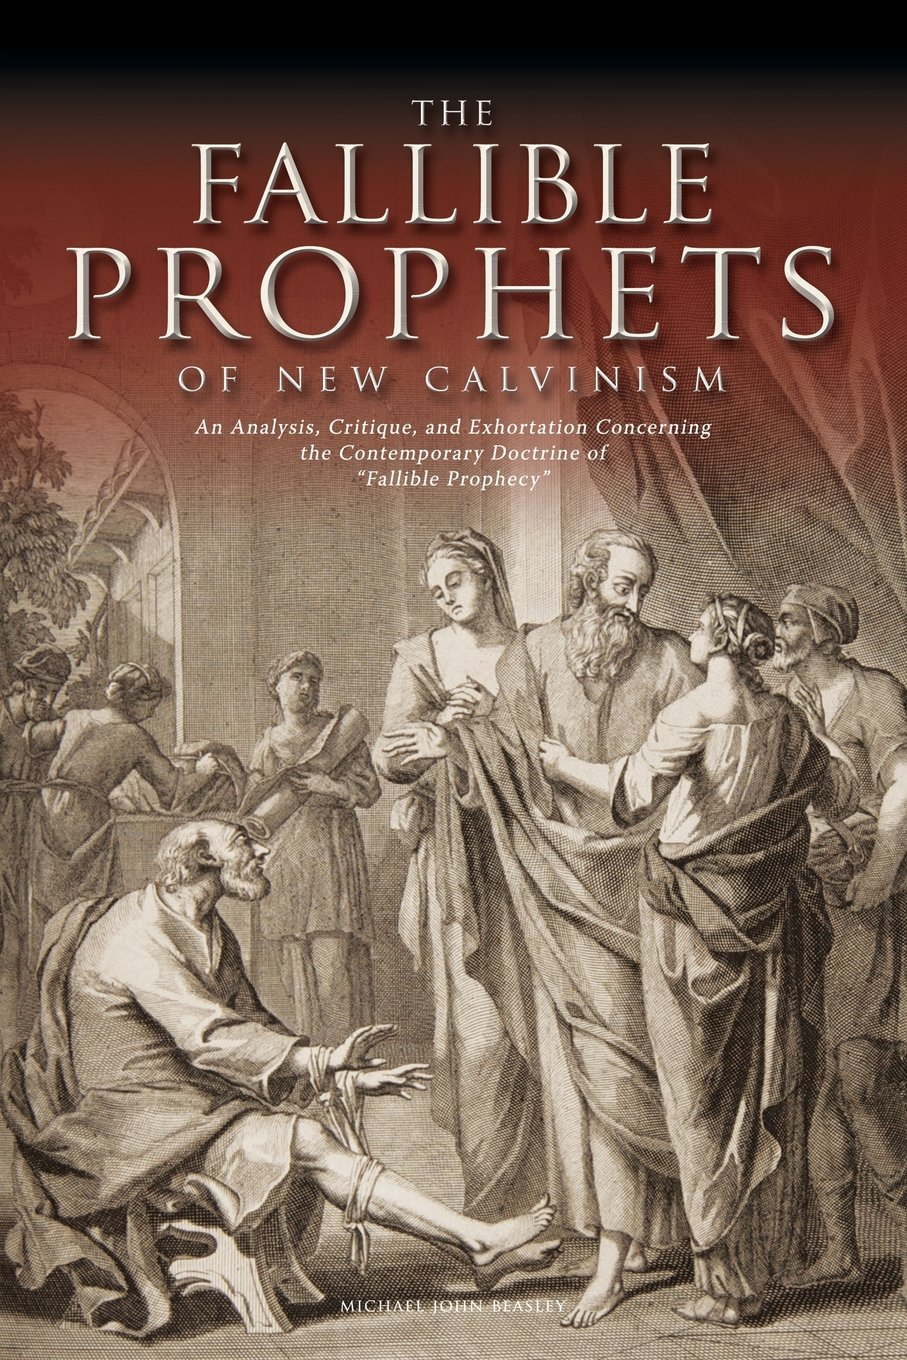 Read Online The Fallible Prophets of New Calvinism: An Analysis, Critique, and Exhortation Concerning the Contemporary Doctrine of Fallible Prophecy pdf